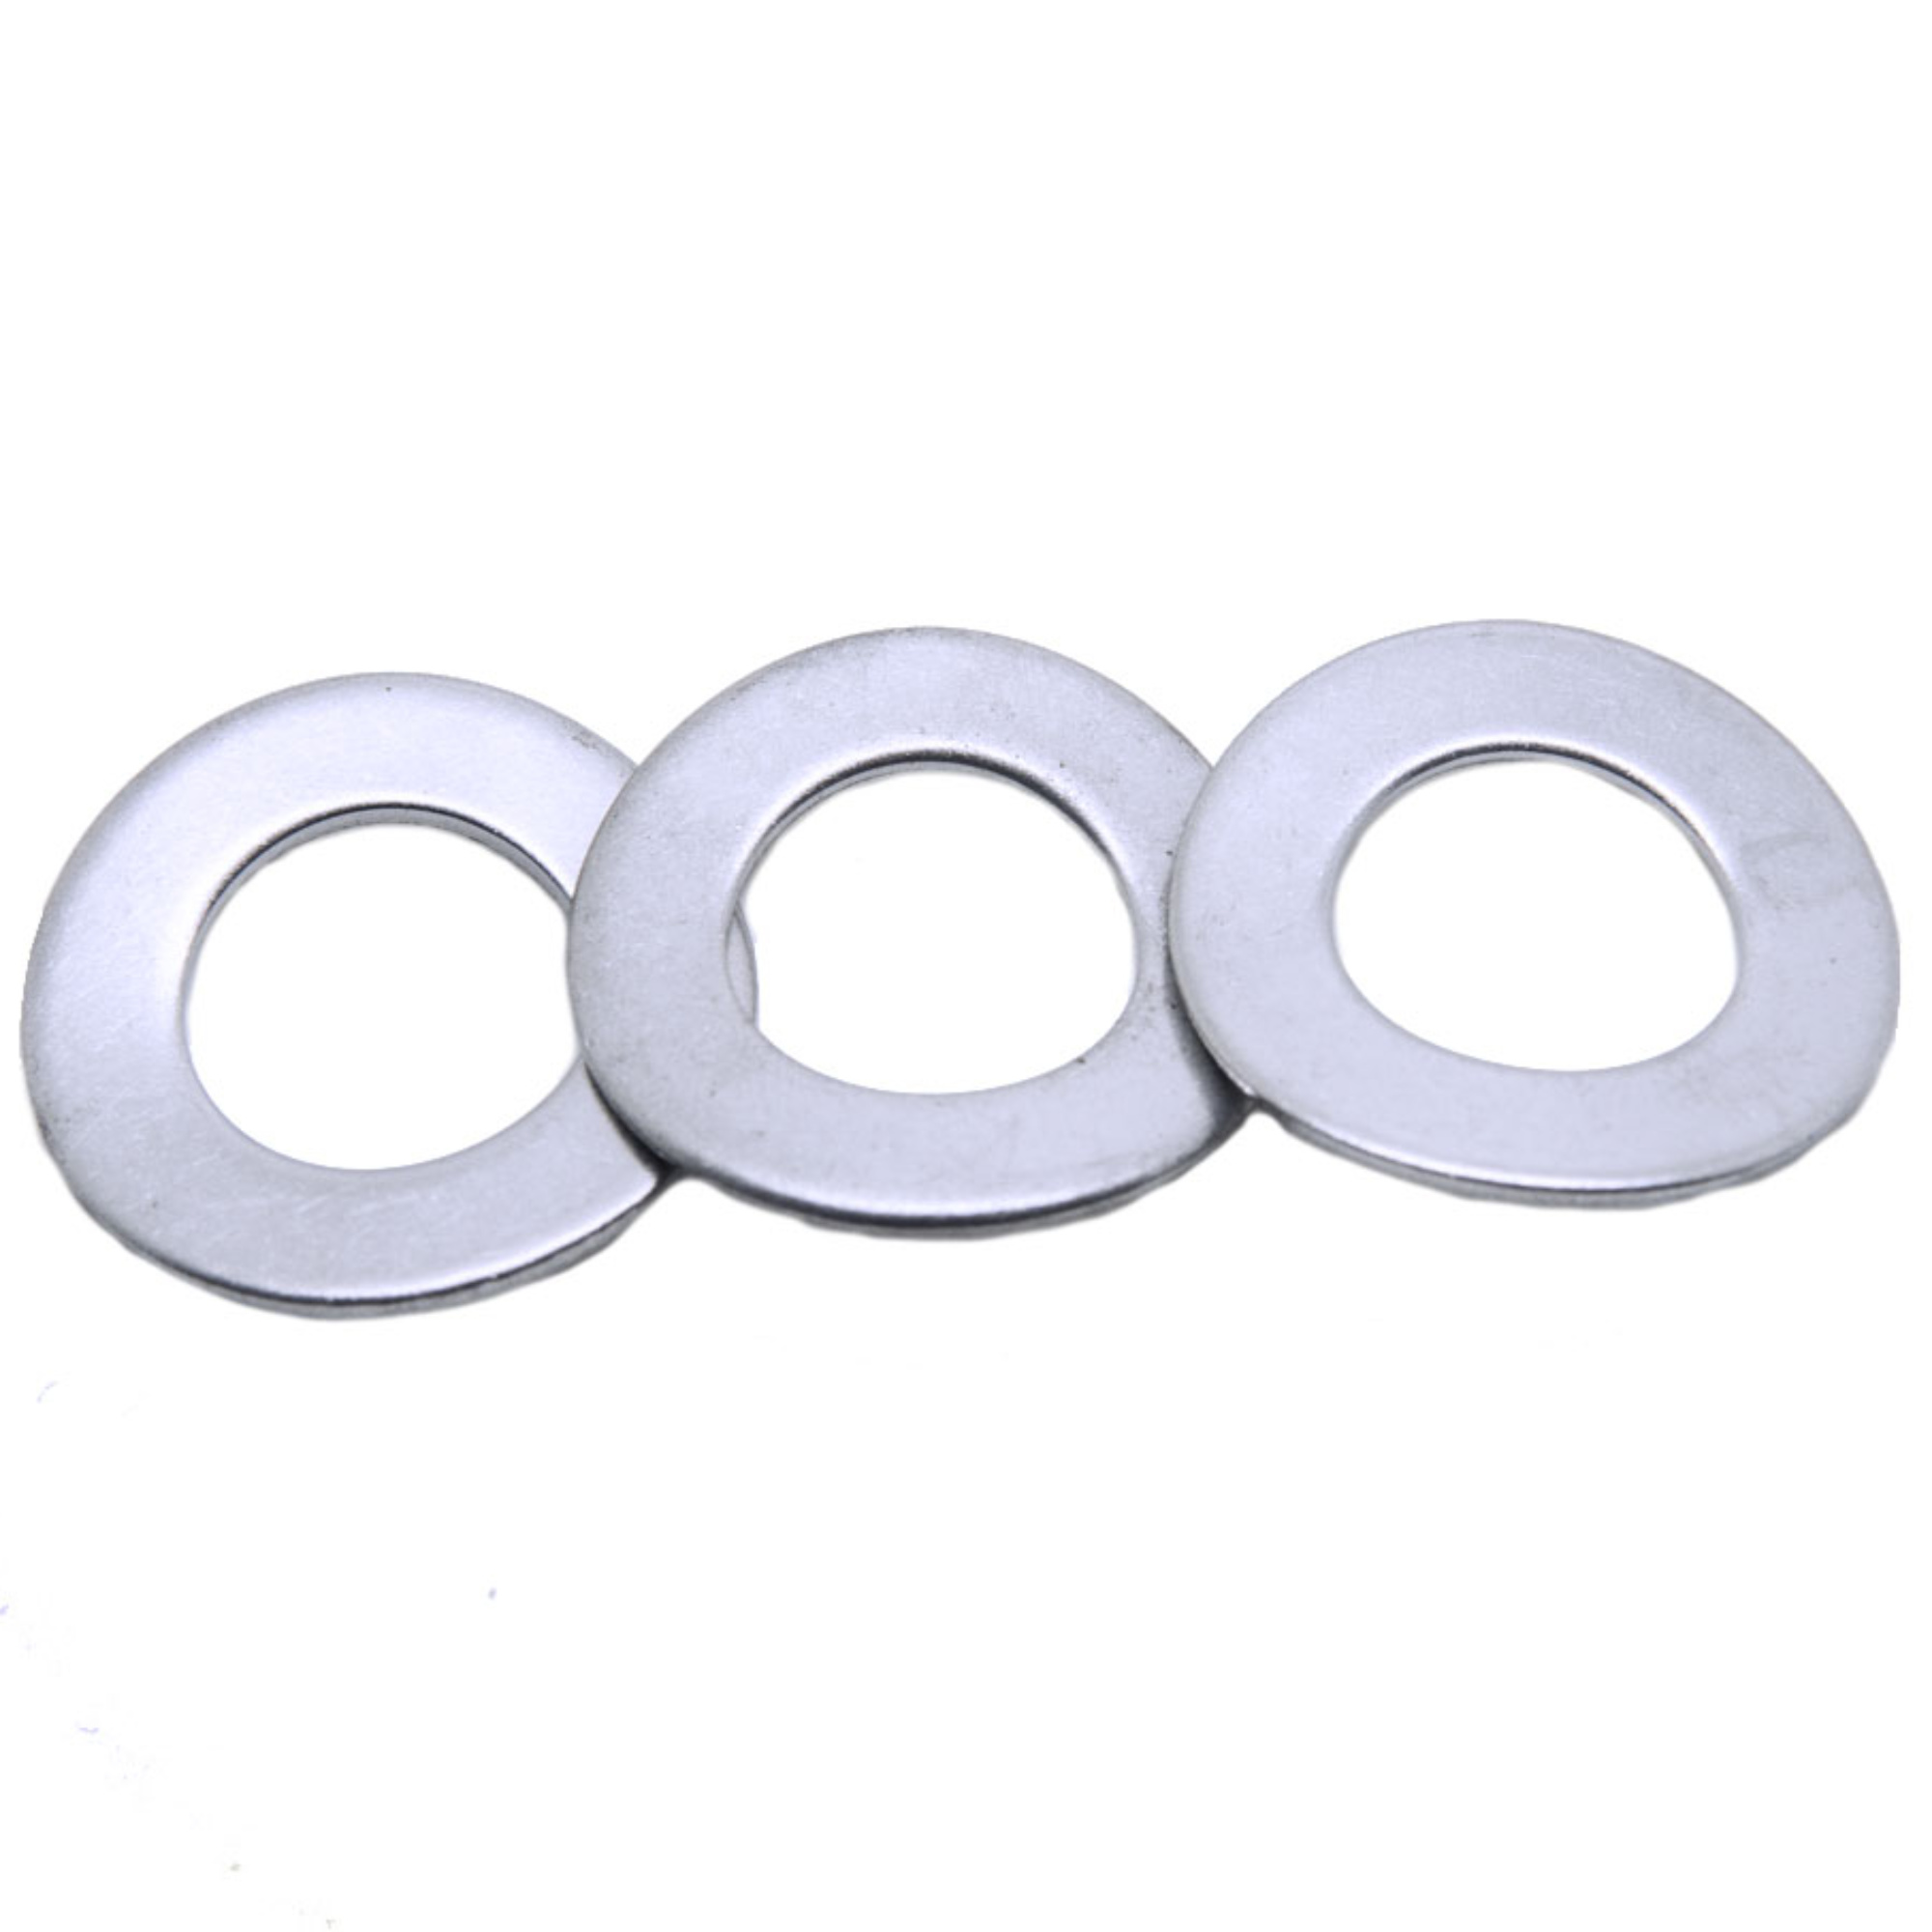 M18 Wave Washer Pack of 10 - Stainless Steel Form B A2 18mm